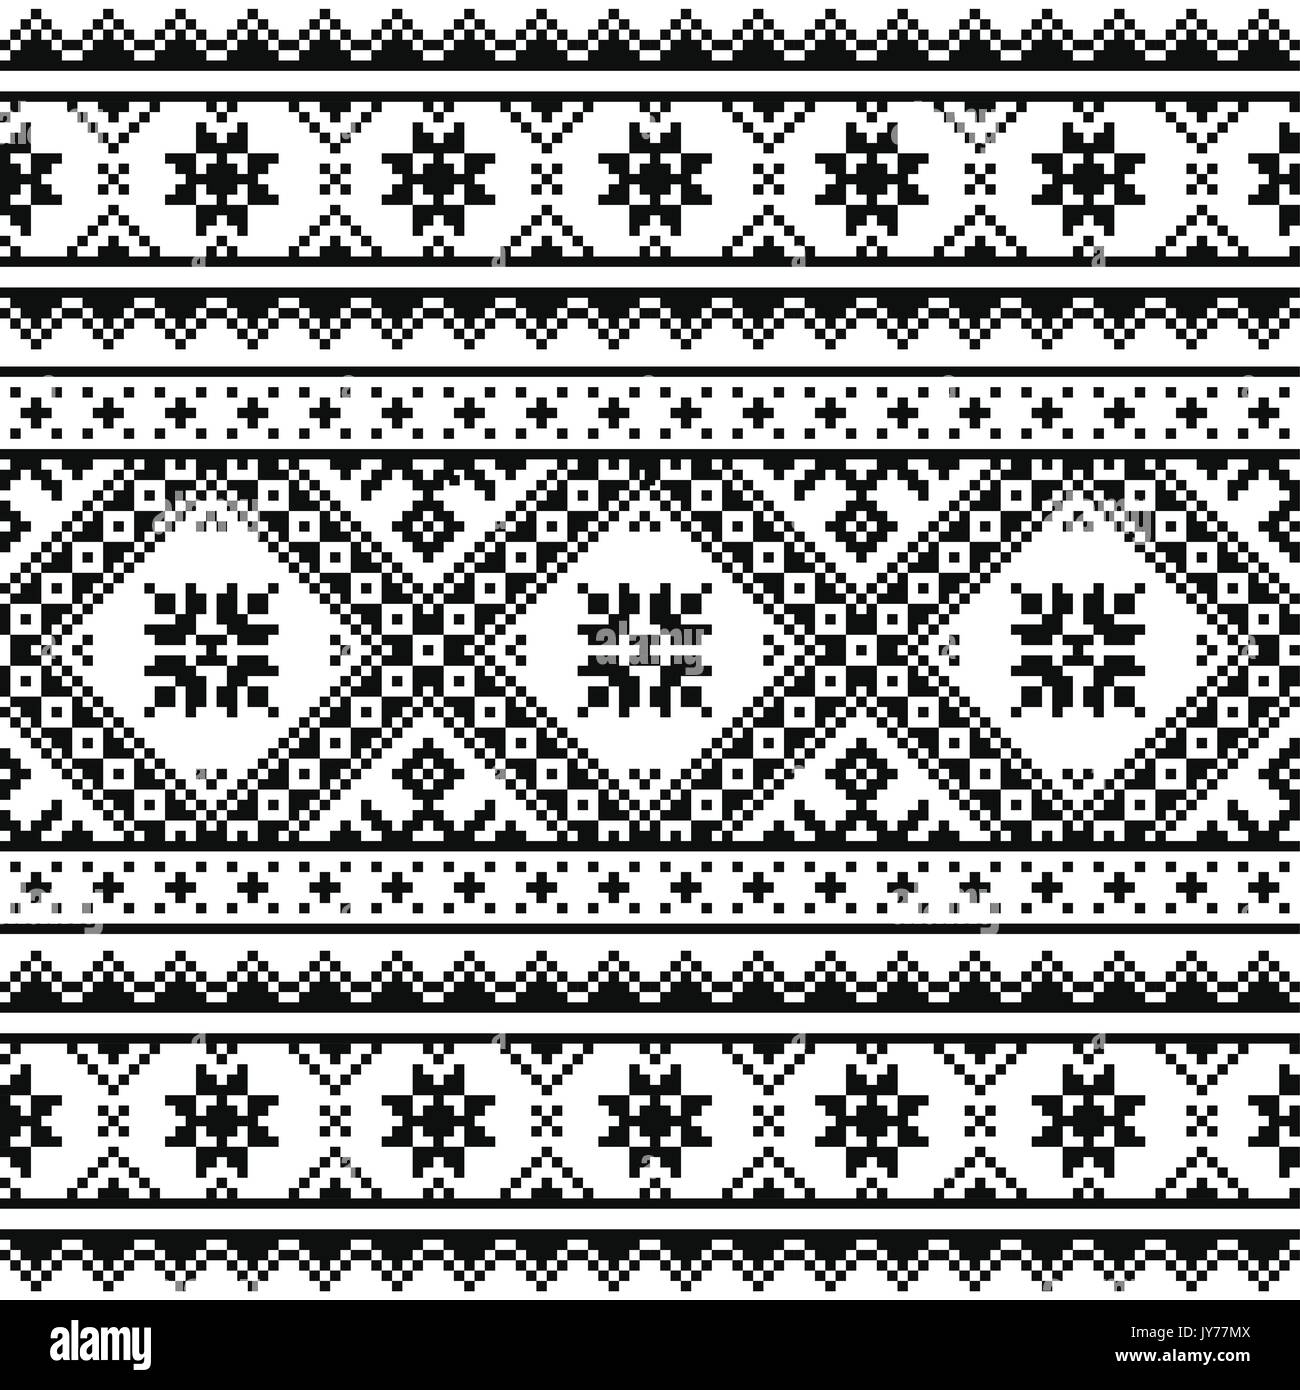 Traditional folk knitted red embroidery pattern from Ukraine or Belarus    Ethnic seamless Ukrainian print in black on white background - Stock Image